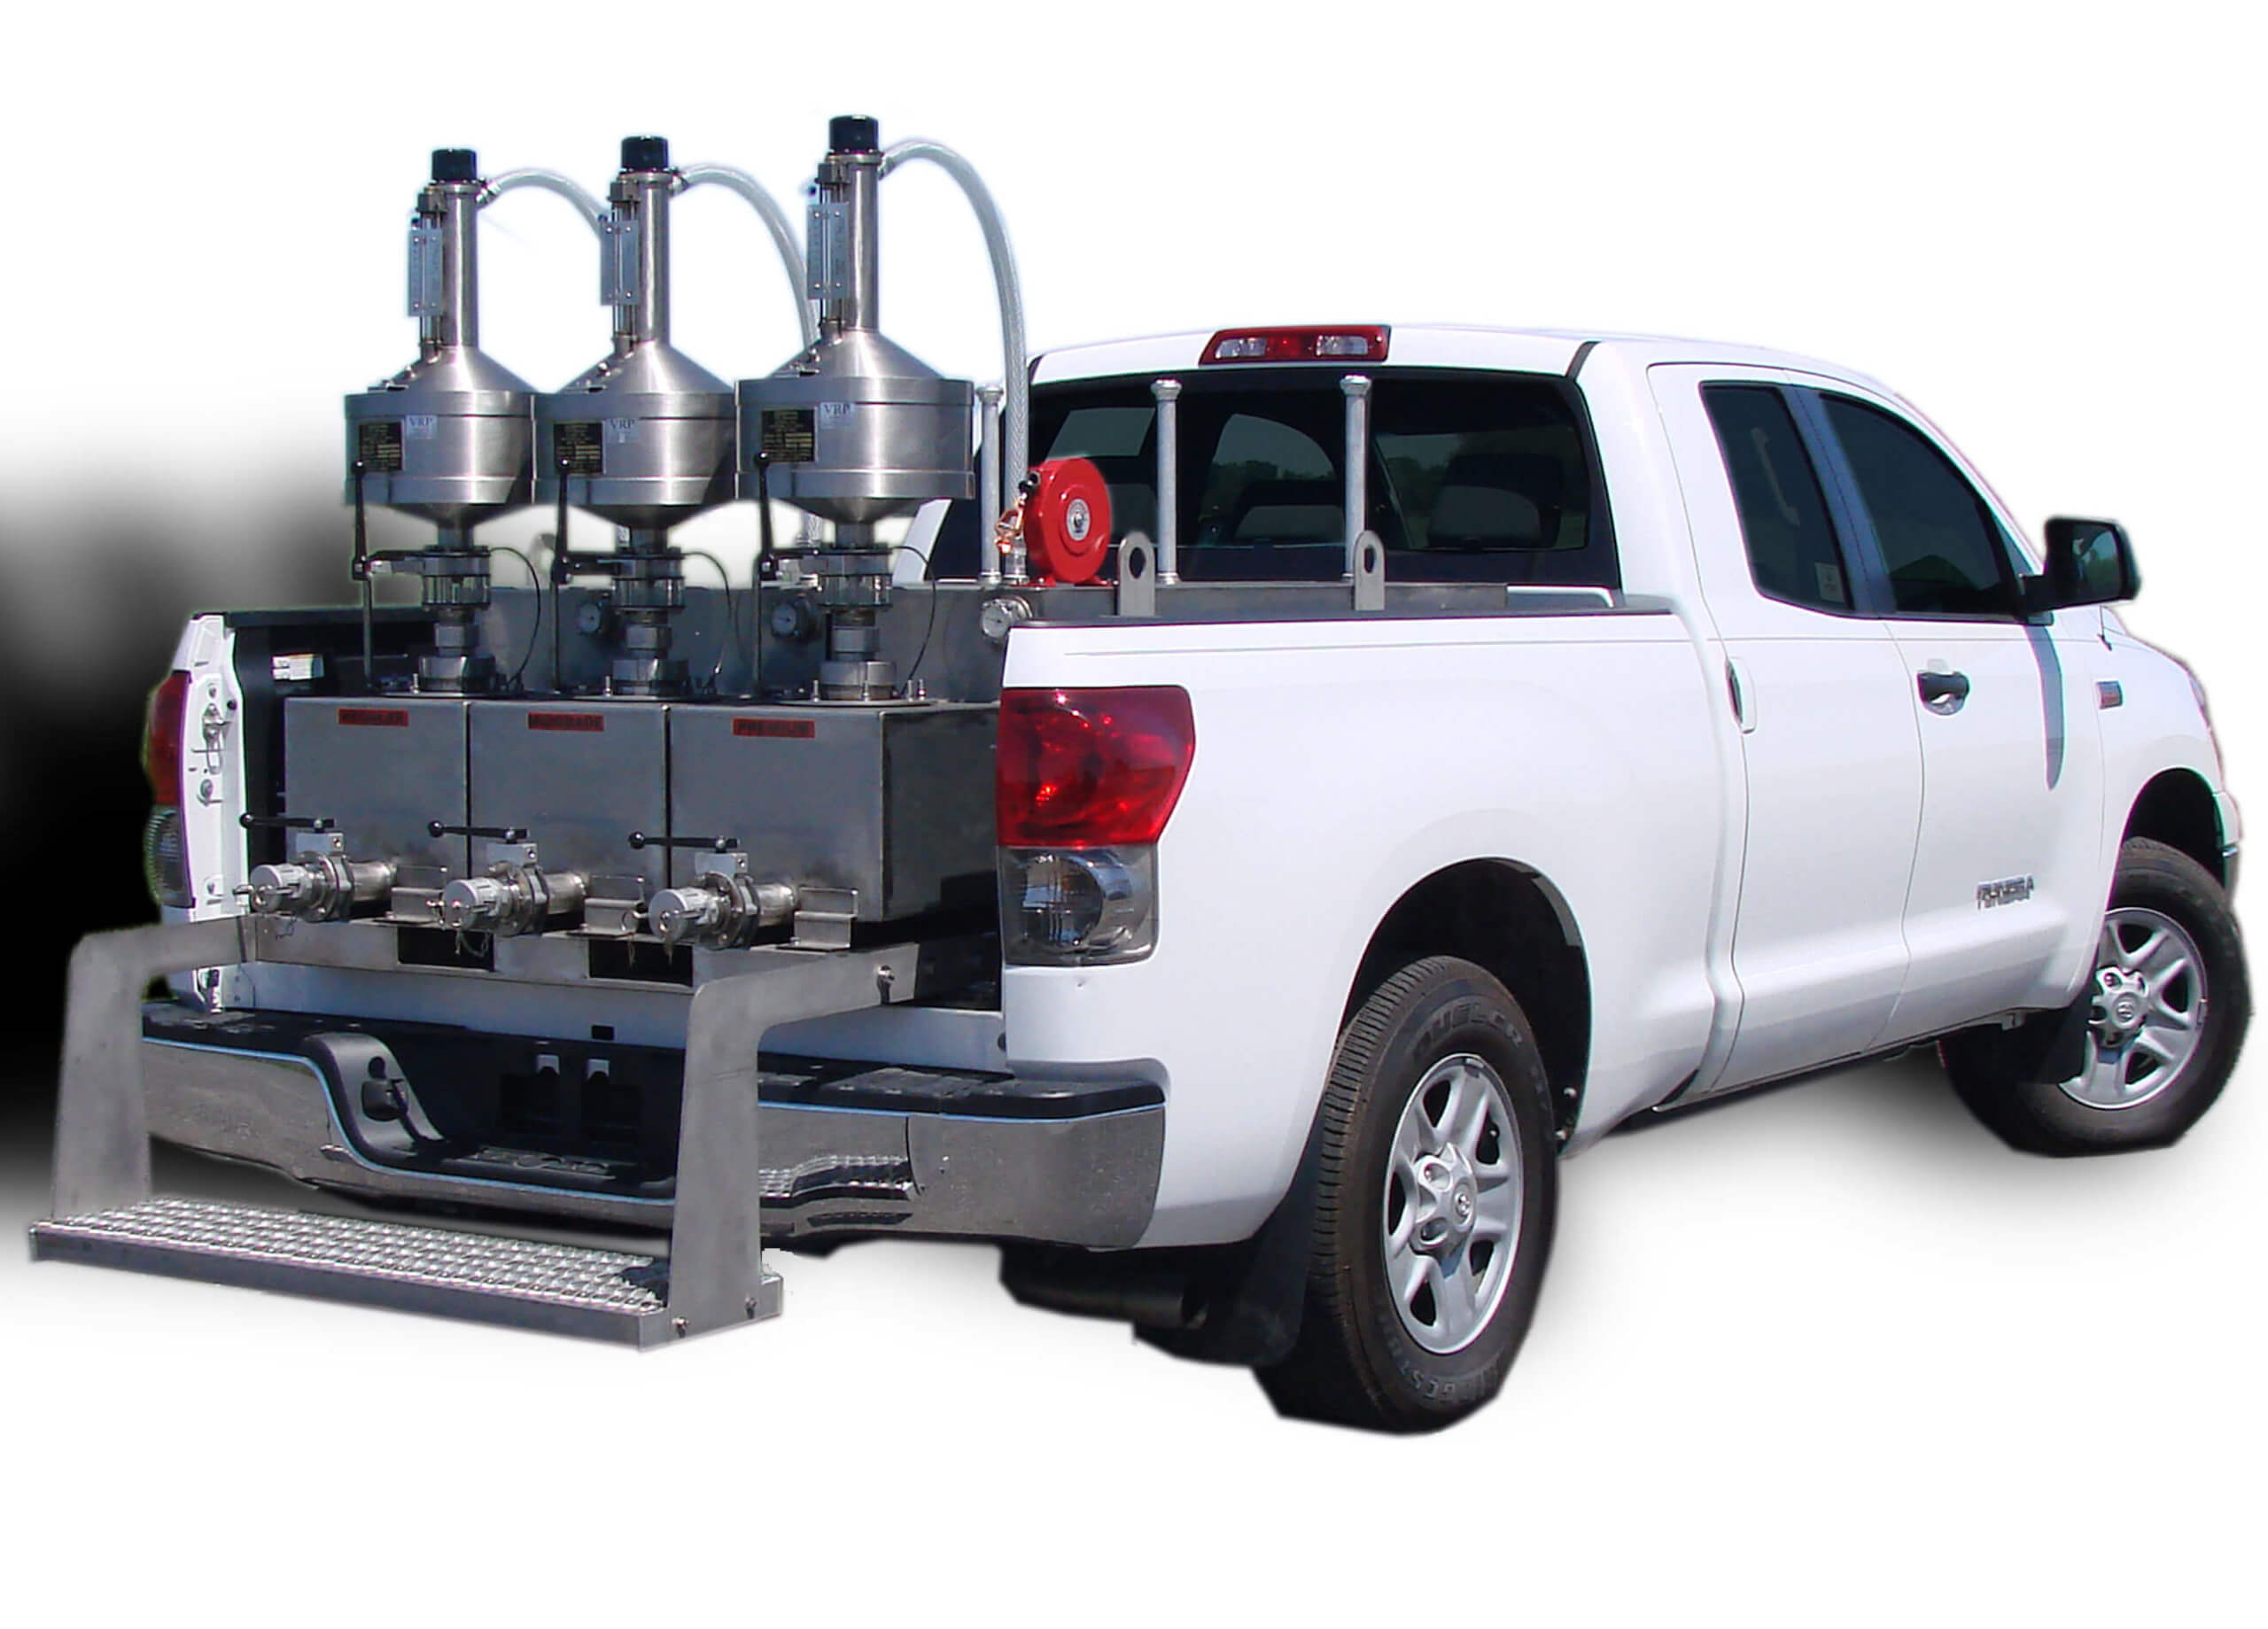 Retail & Mobile Motor Fuel Provers & Calibration Systems